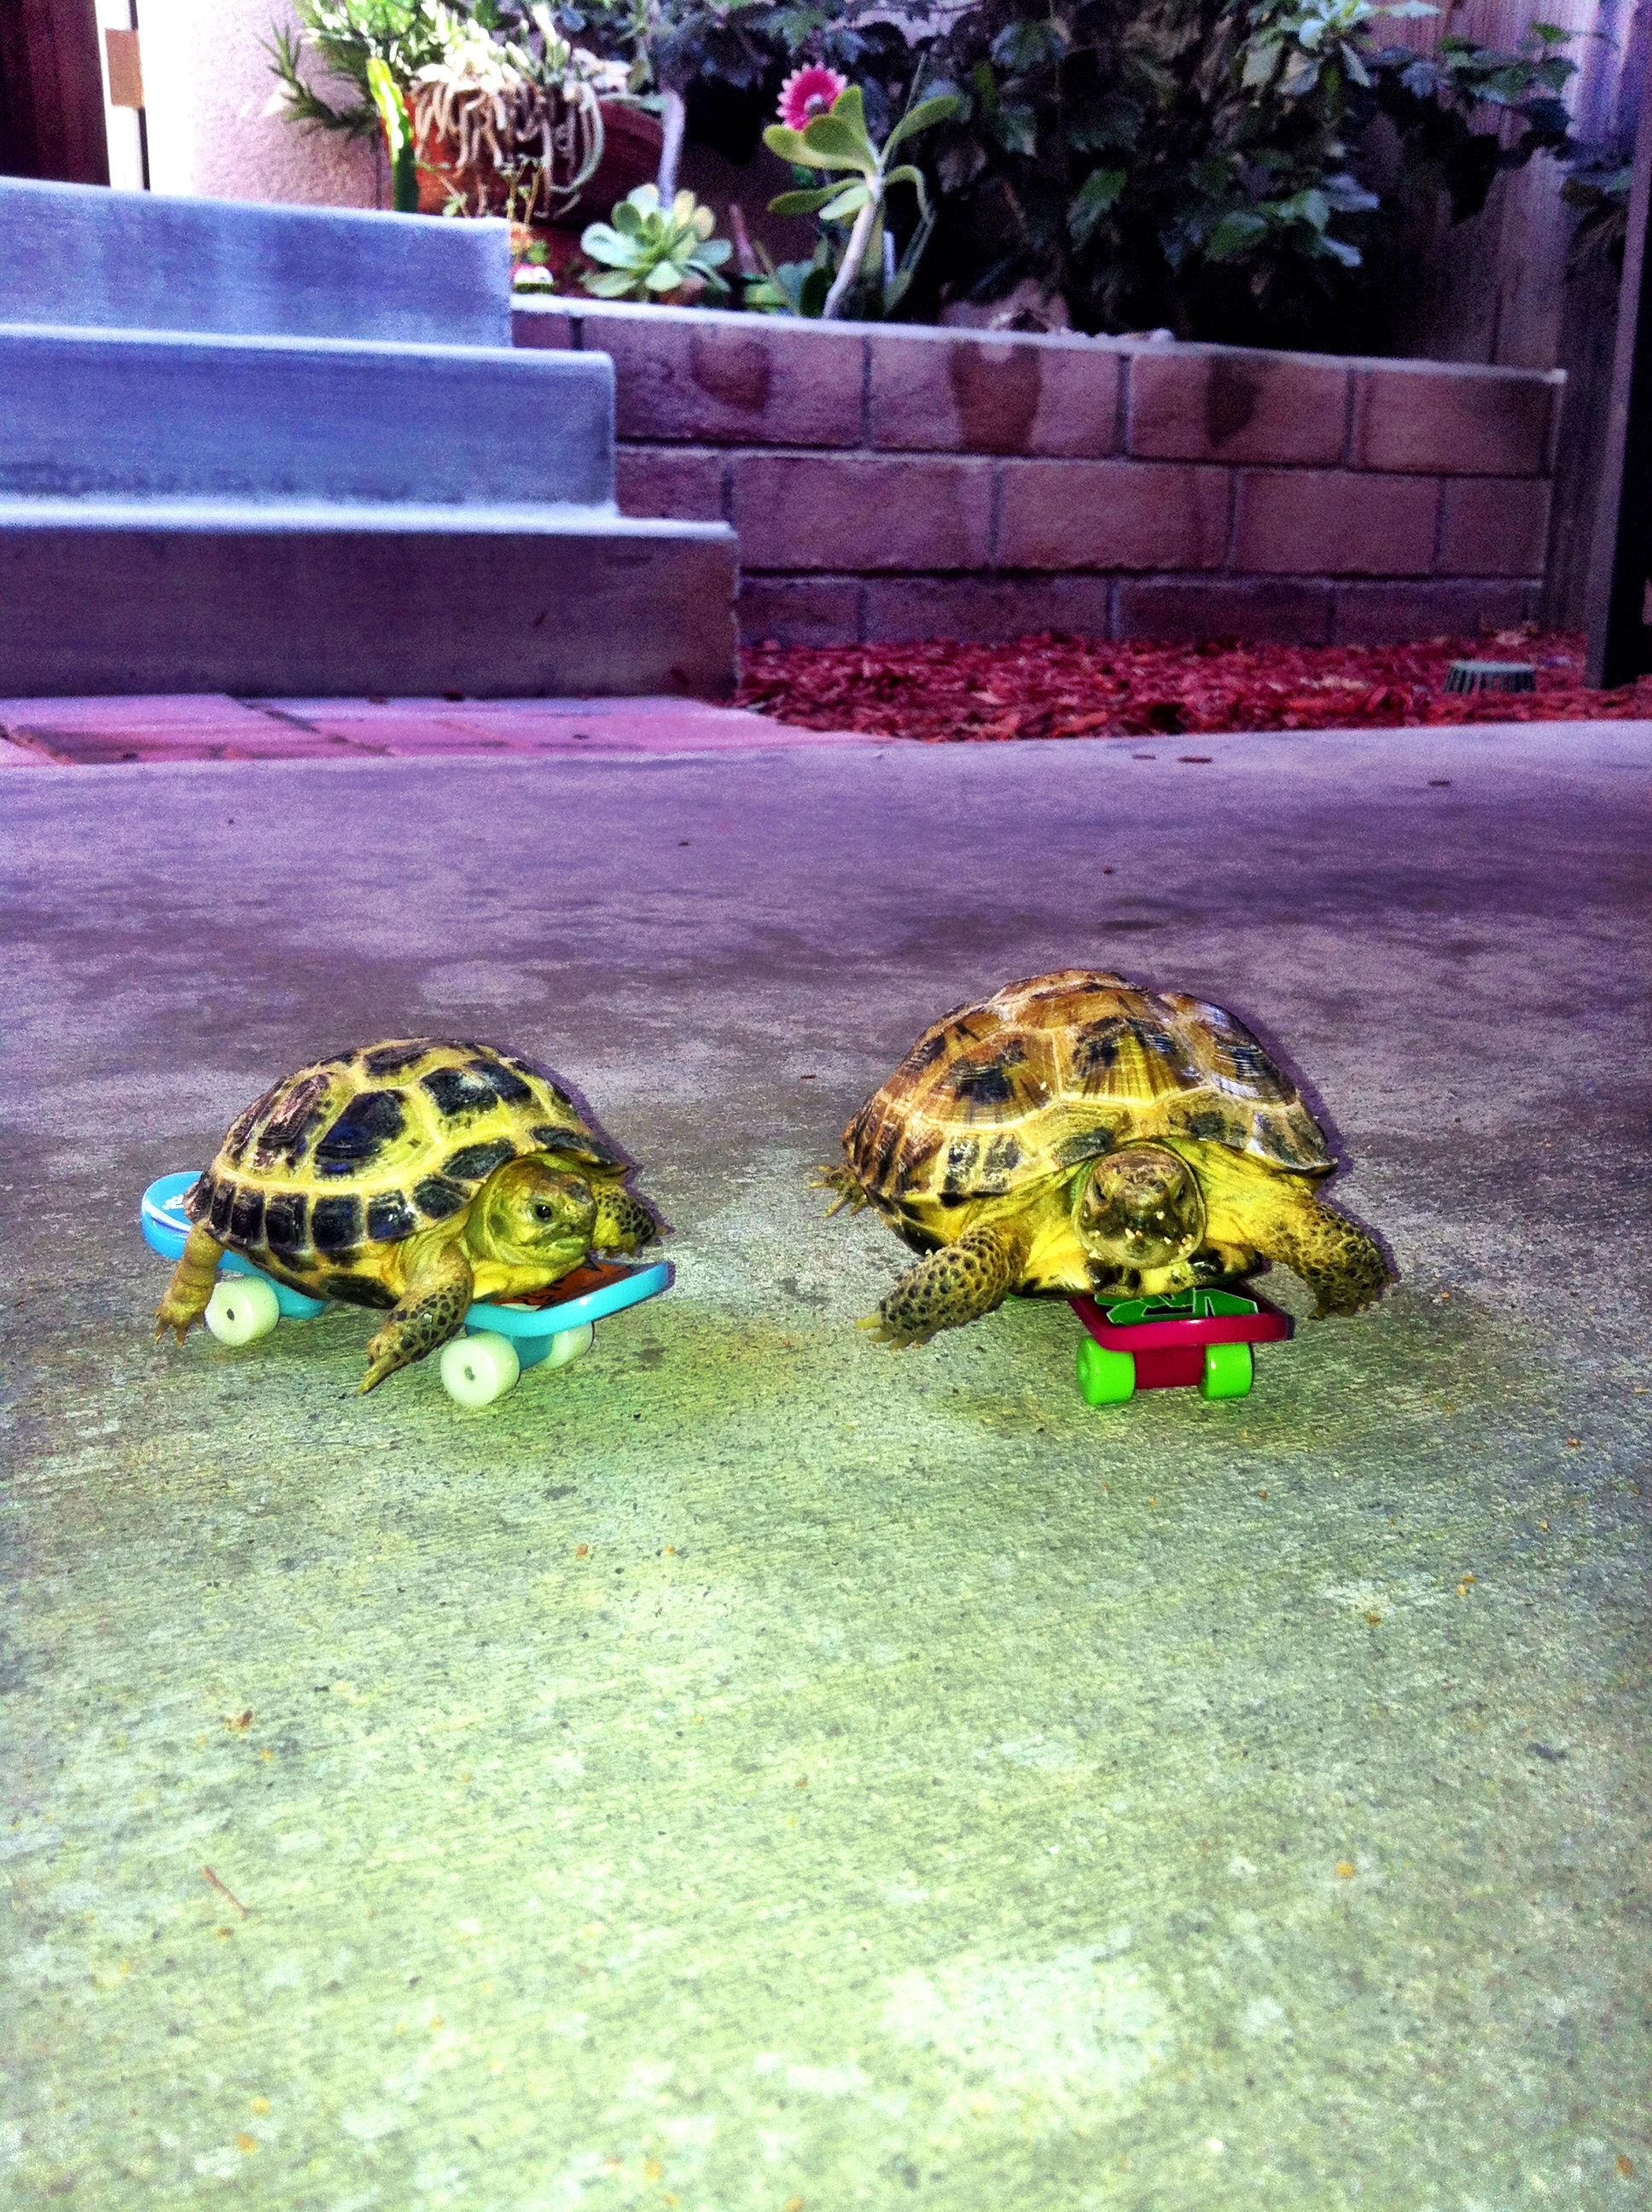 Another Pinner Got Me Nails Diddd I Love The Solid: Another Pinner's Adorable Russian Tortoises Bowser And